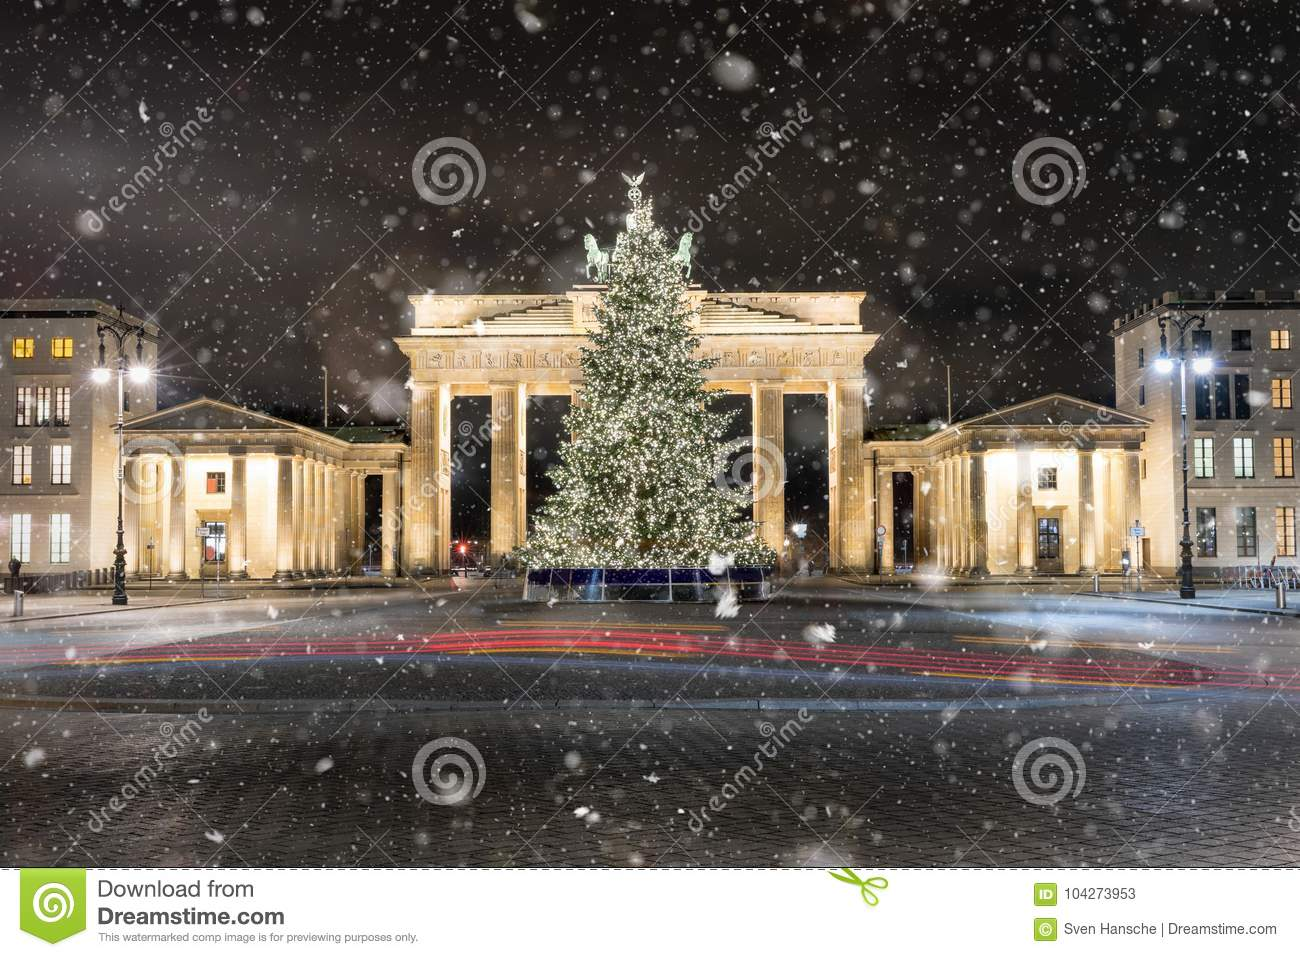 The Brandenburg Gate in Berlin with Christmas tree